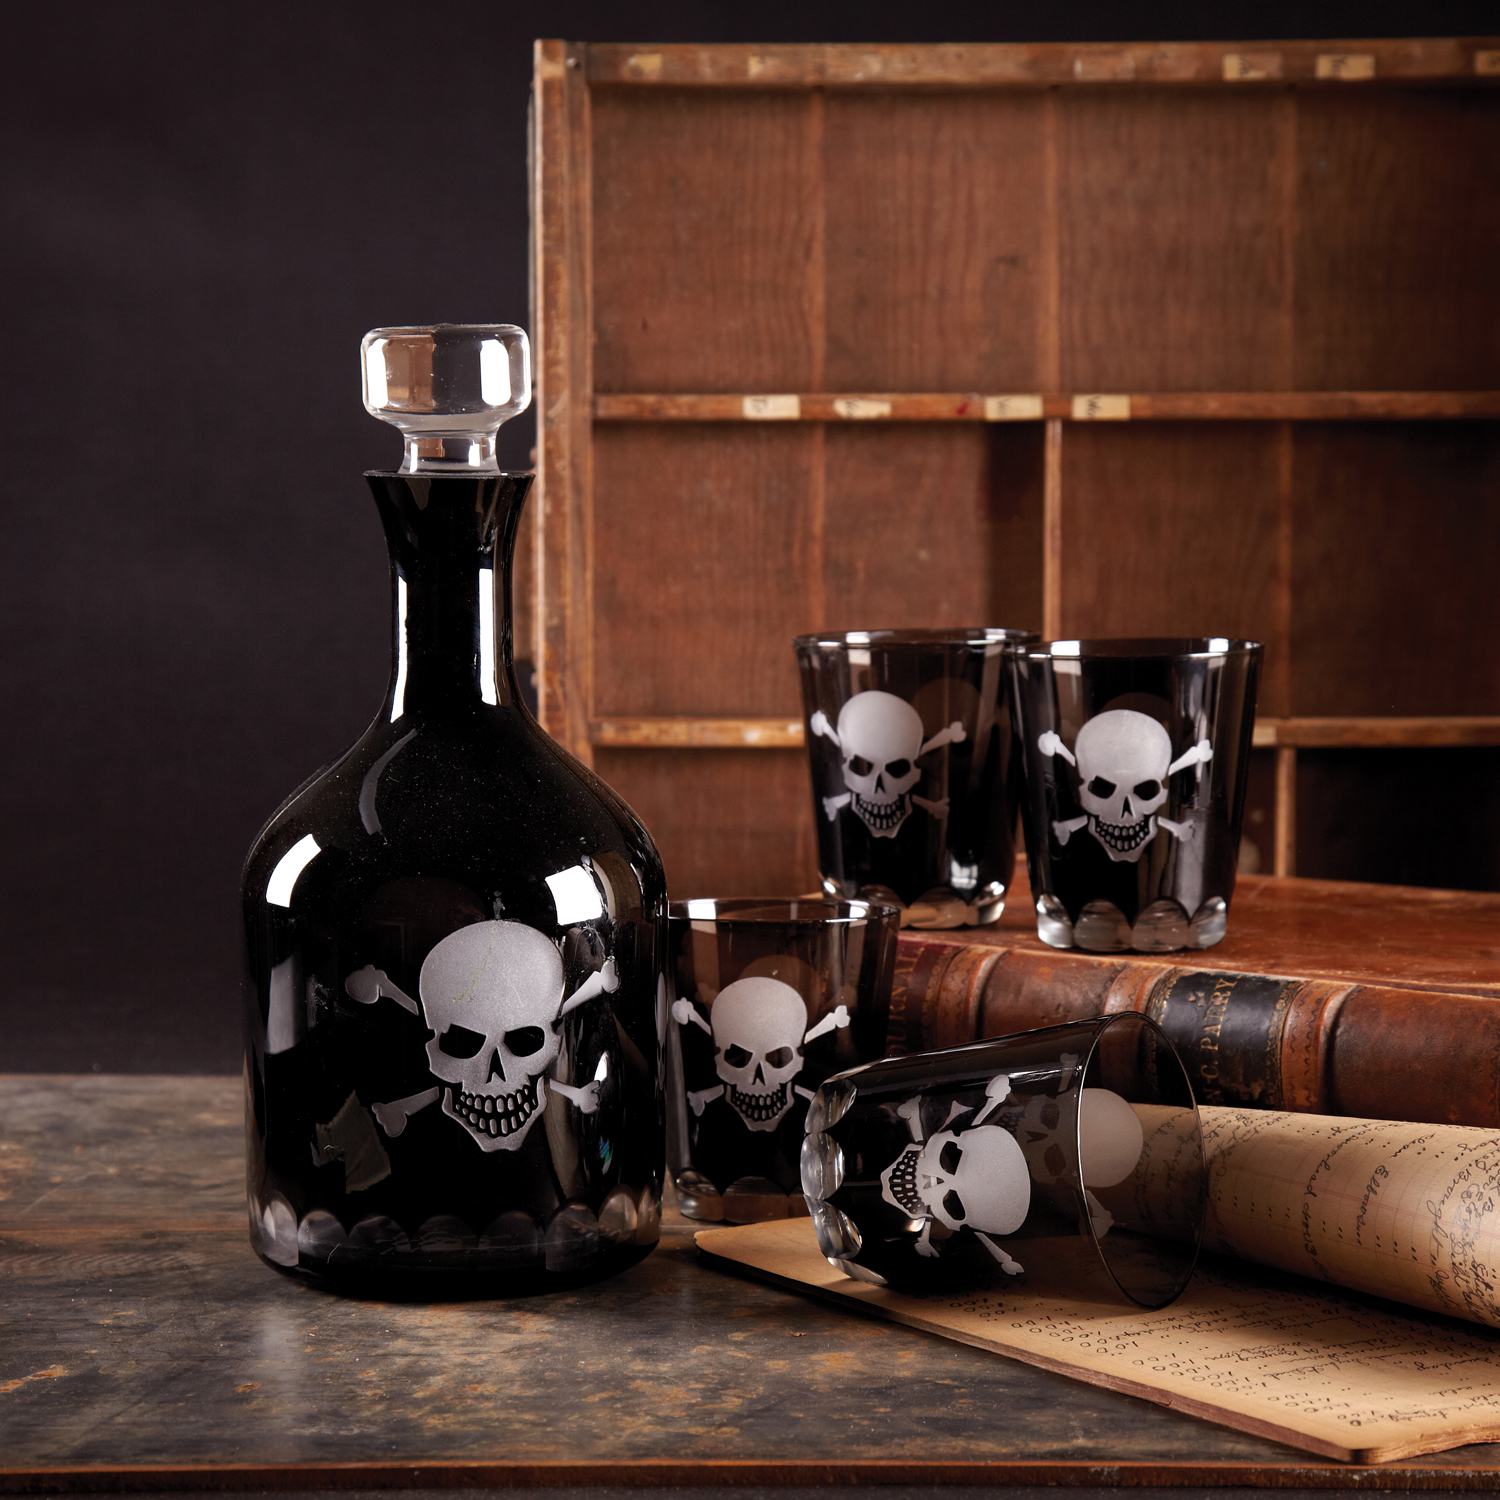 Skull Gifts & Unusual Items